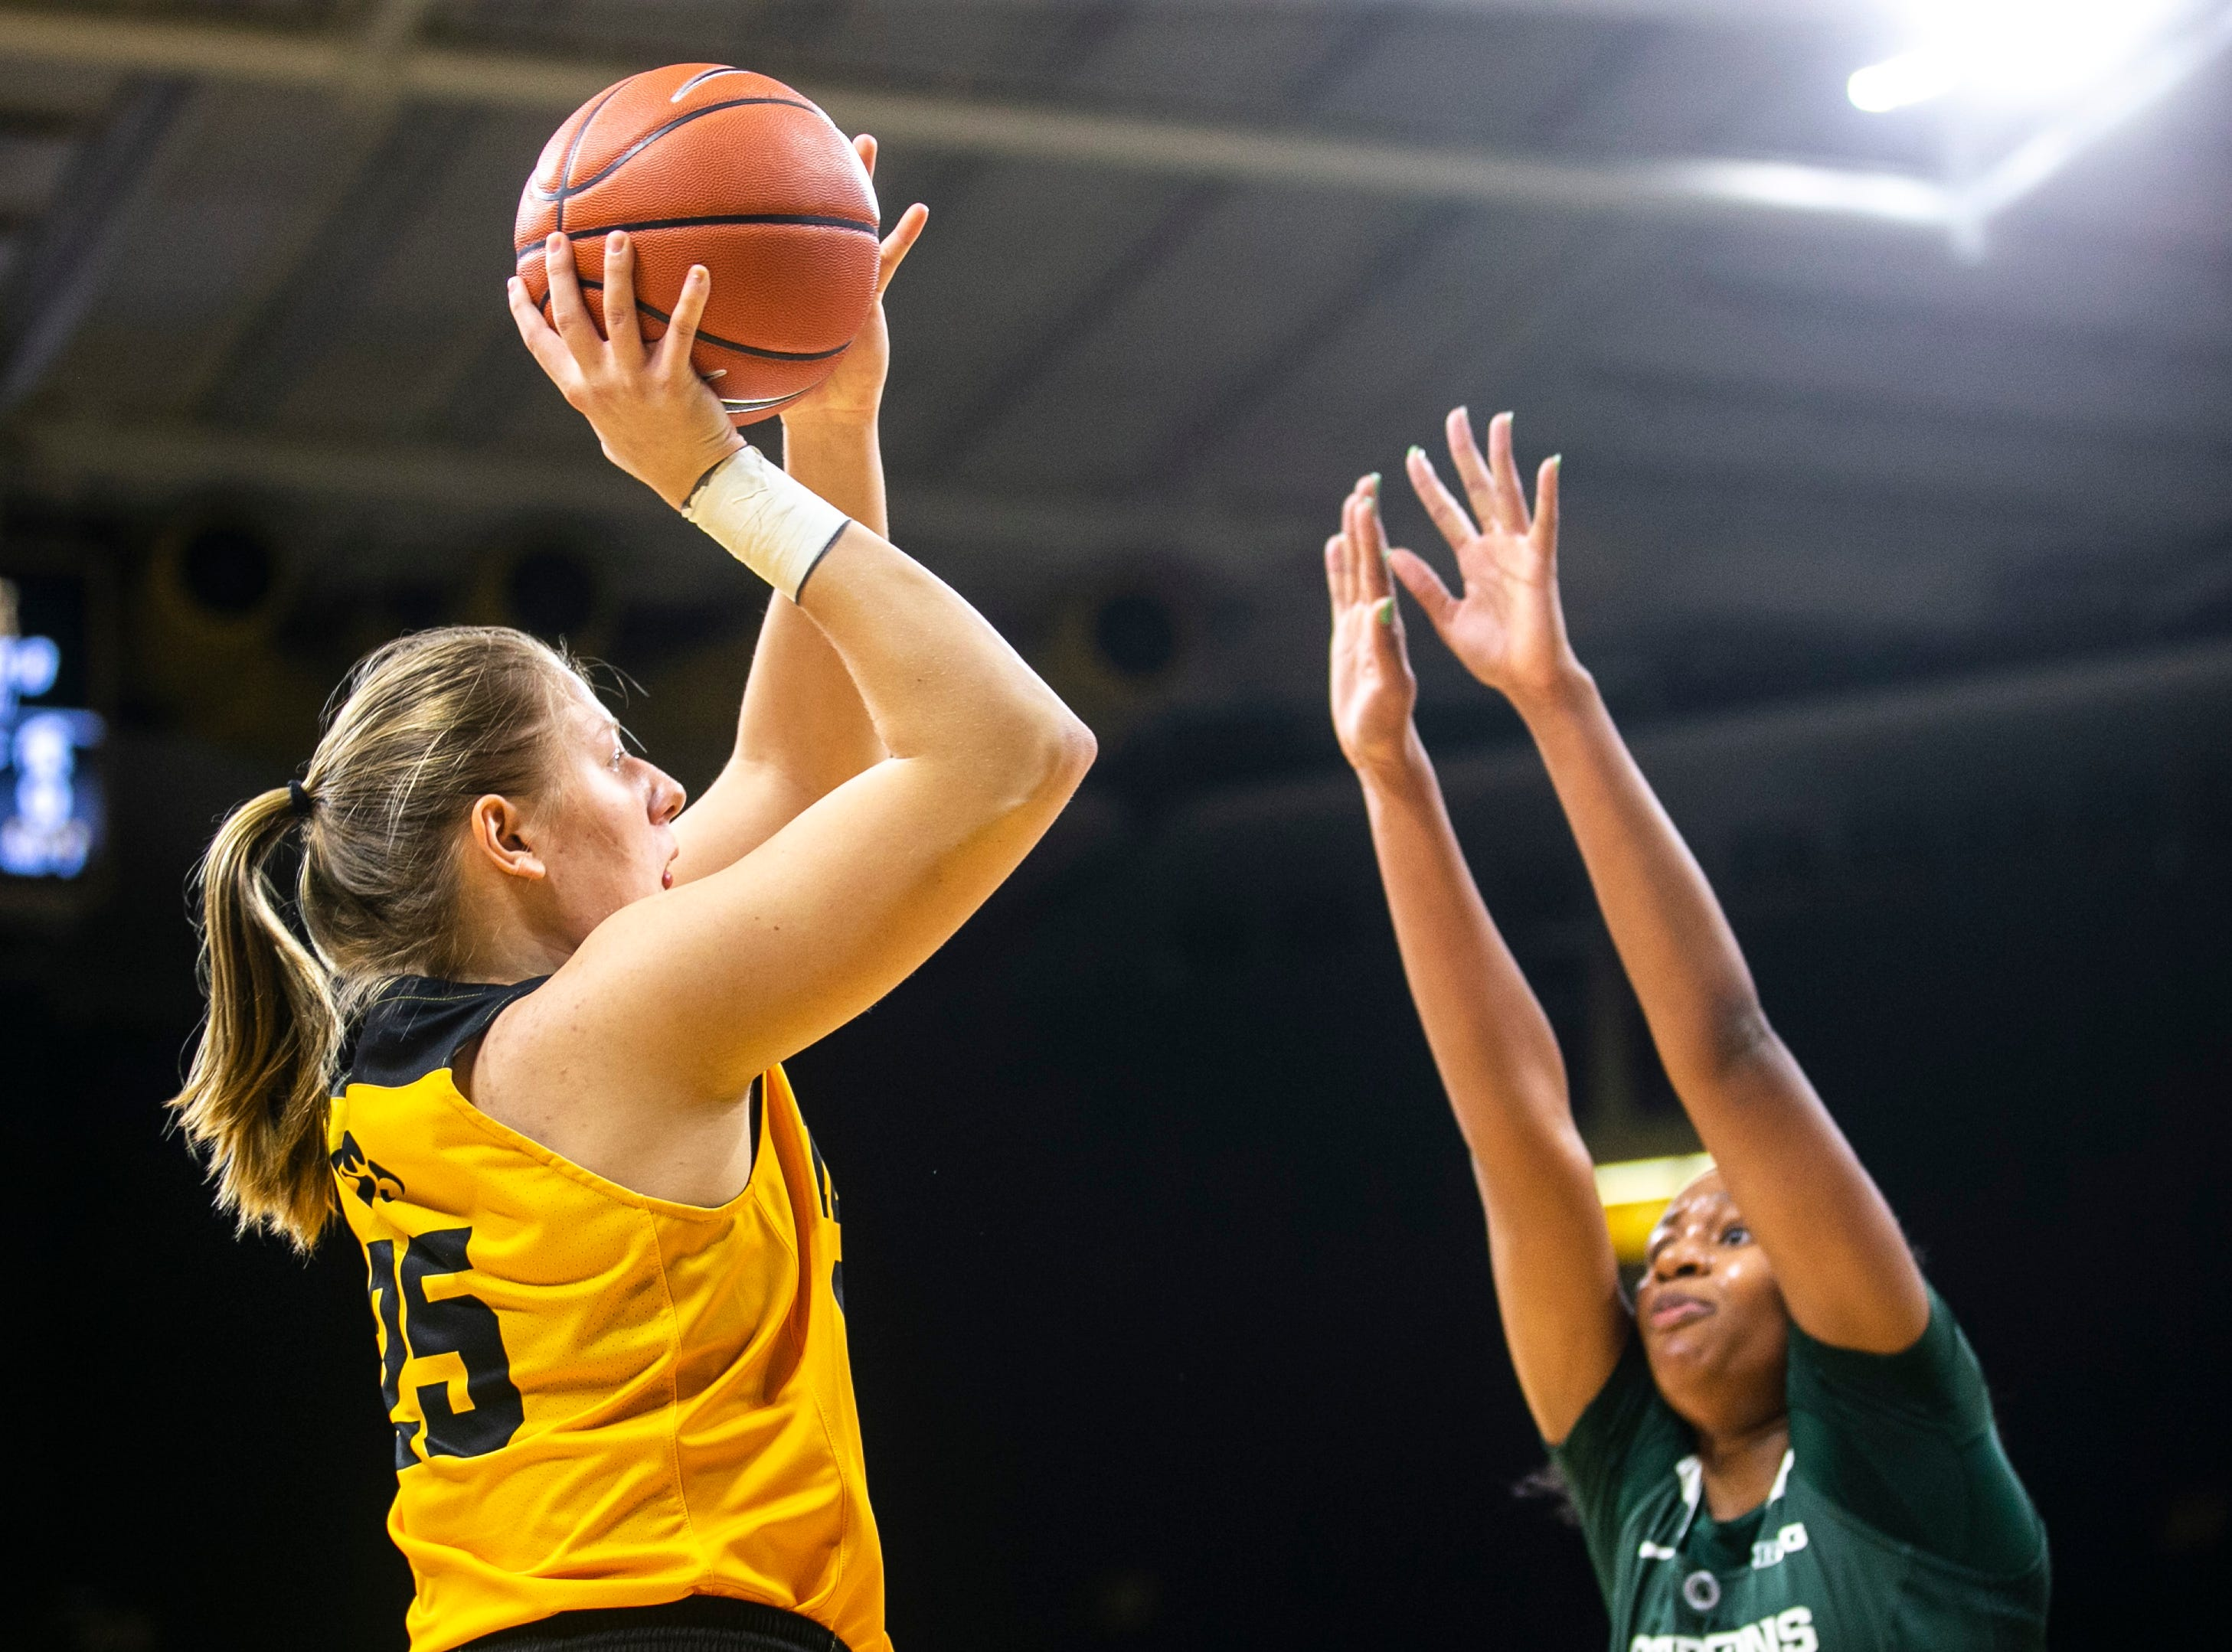 Iowa's Monika Czinano (25) attempts a basket while Michigan State forward Sidney Cooks, right, defends during a NCAA Big Ten Conference women's basketball game on Thursday, Feb. 7, 2019 at Carver-Hawkeye Arena in Iowa City, Iowa.